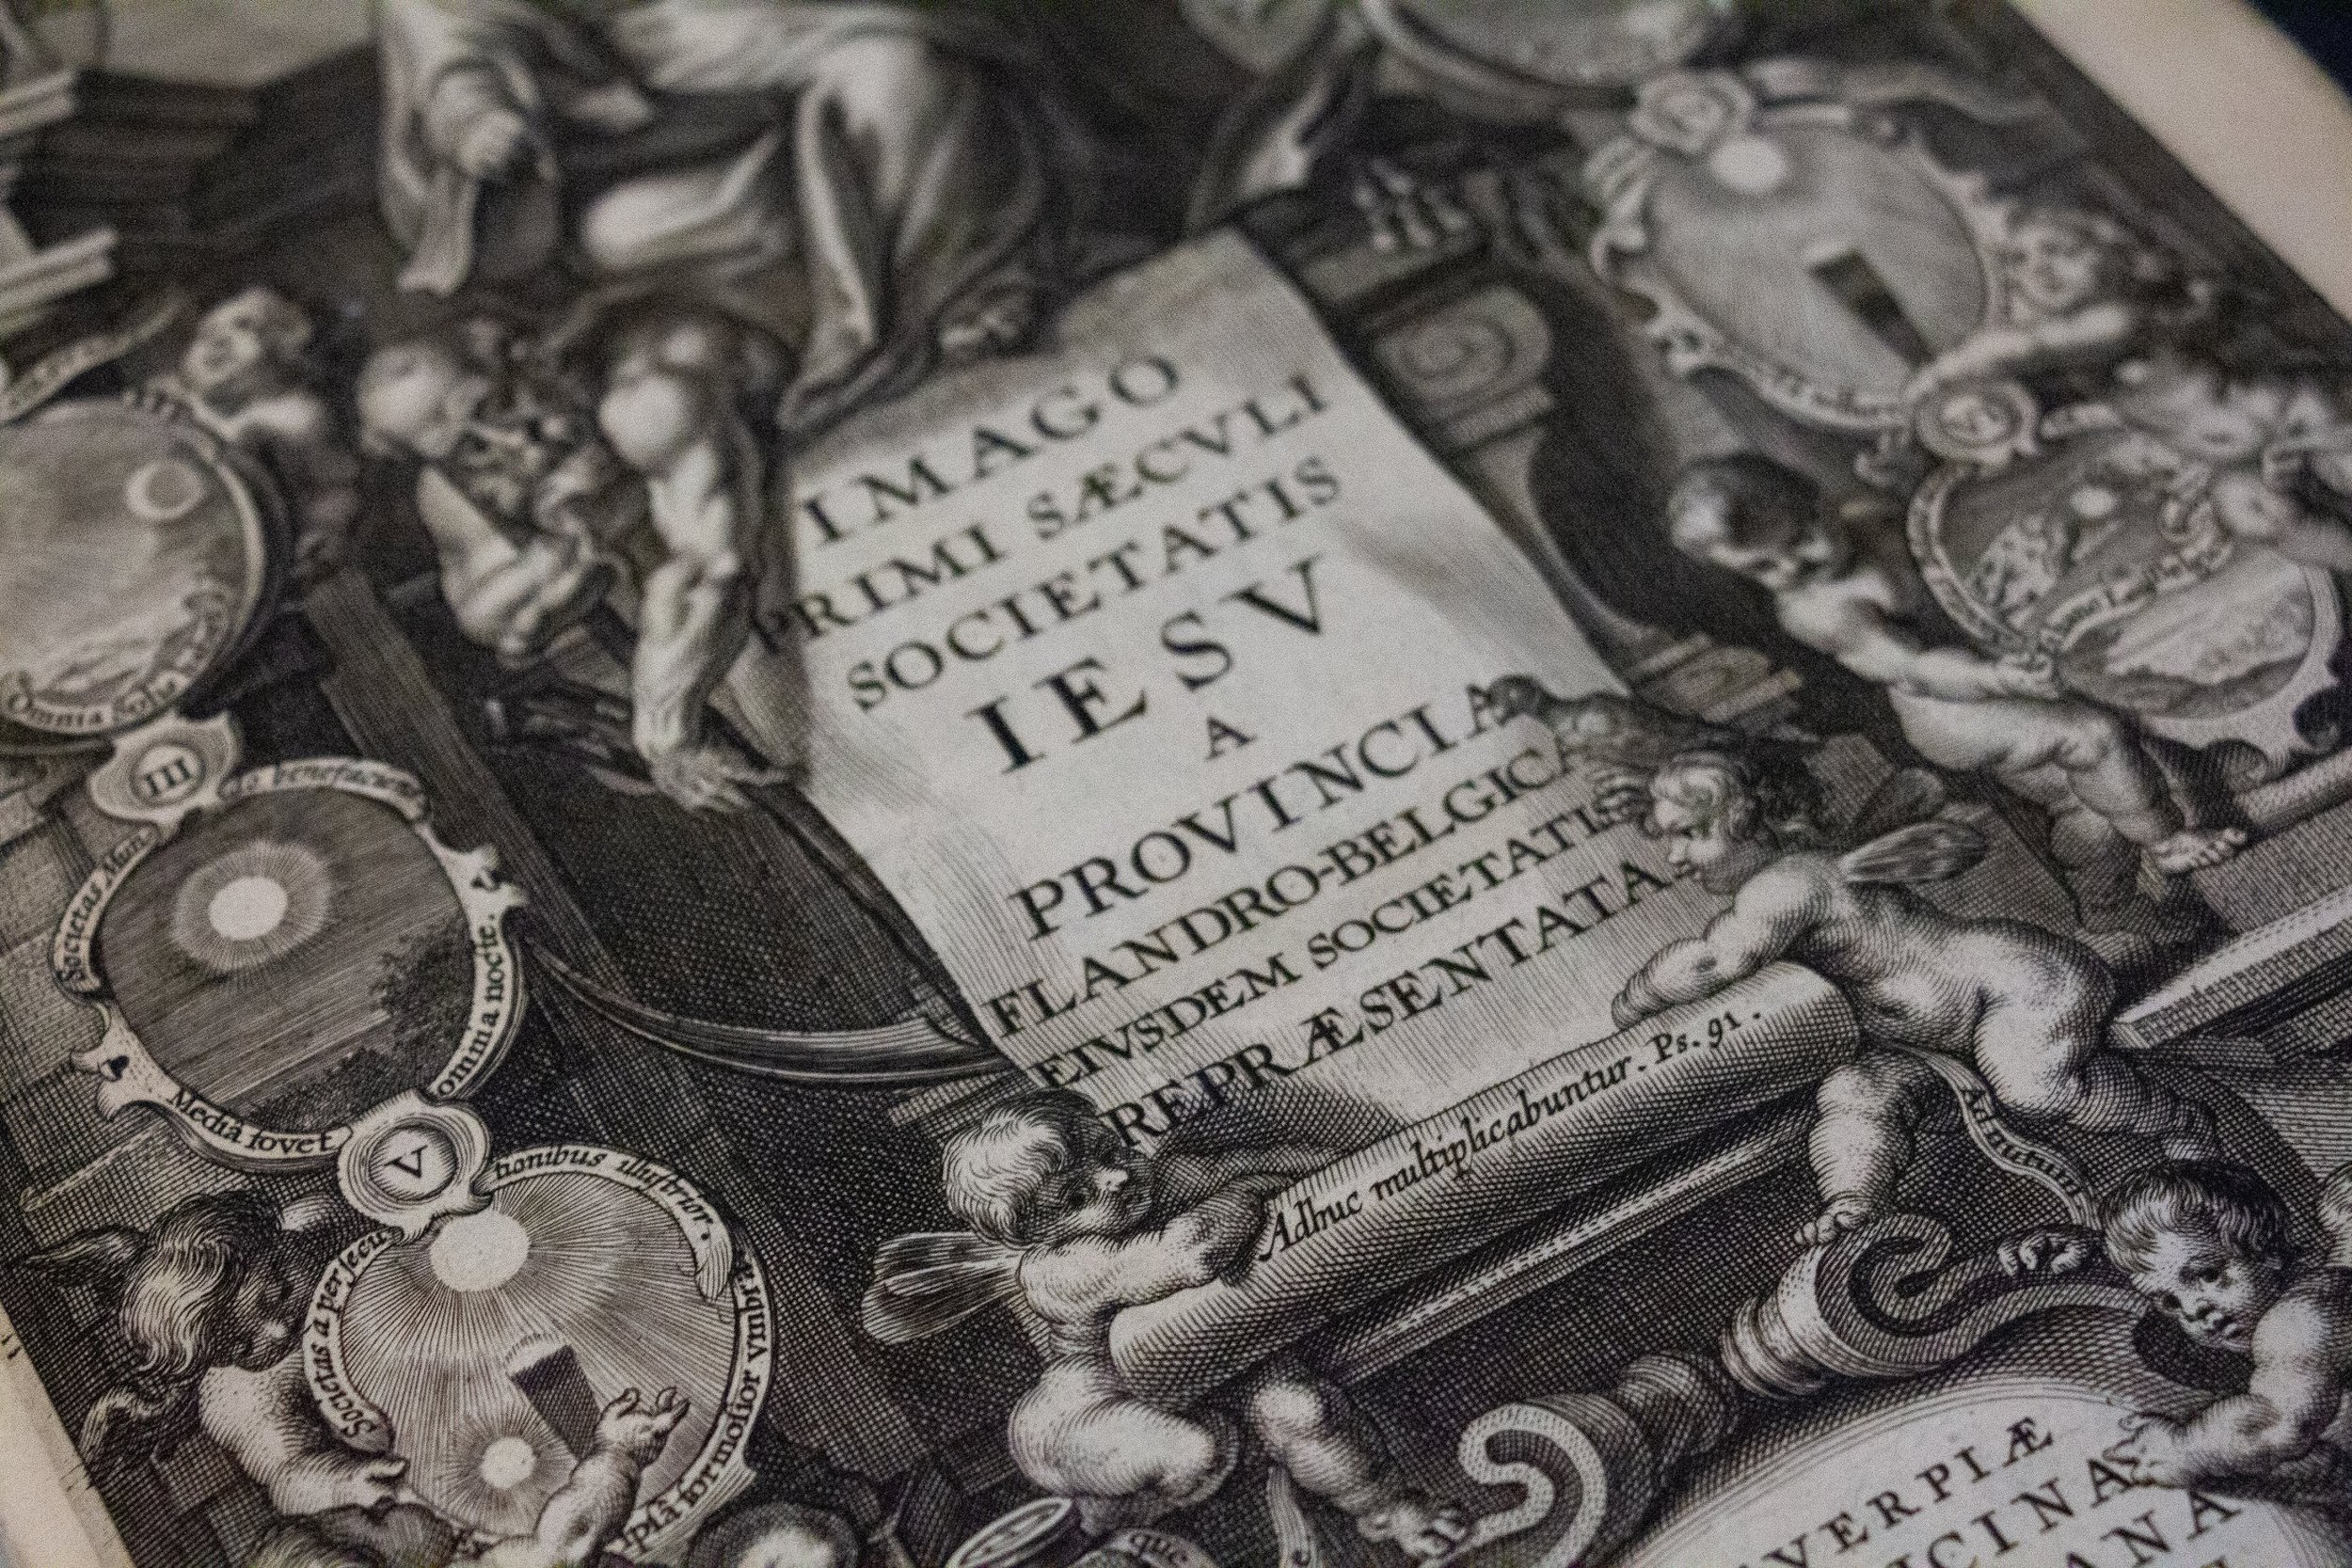 Images from Plantin-Moretus Museum Archive